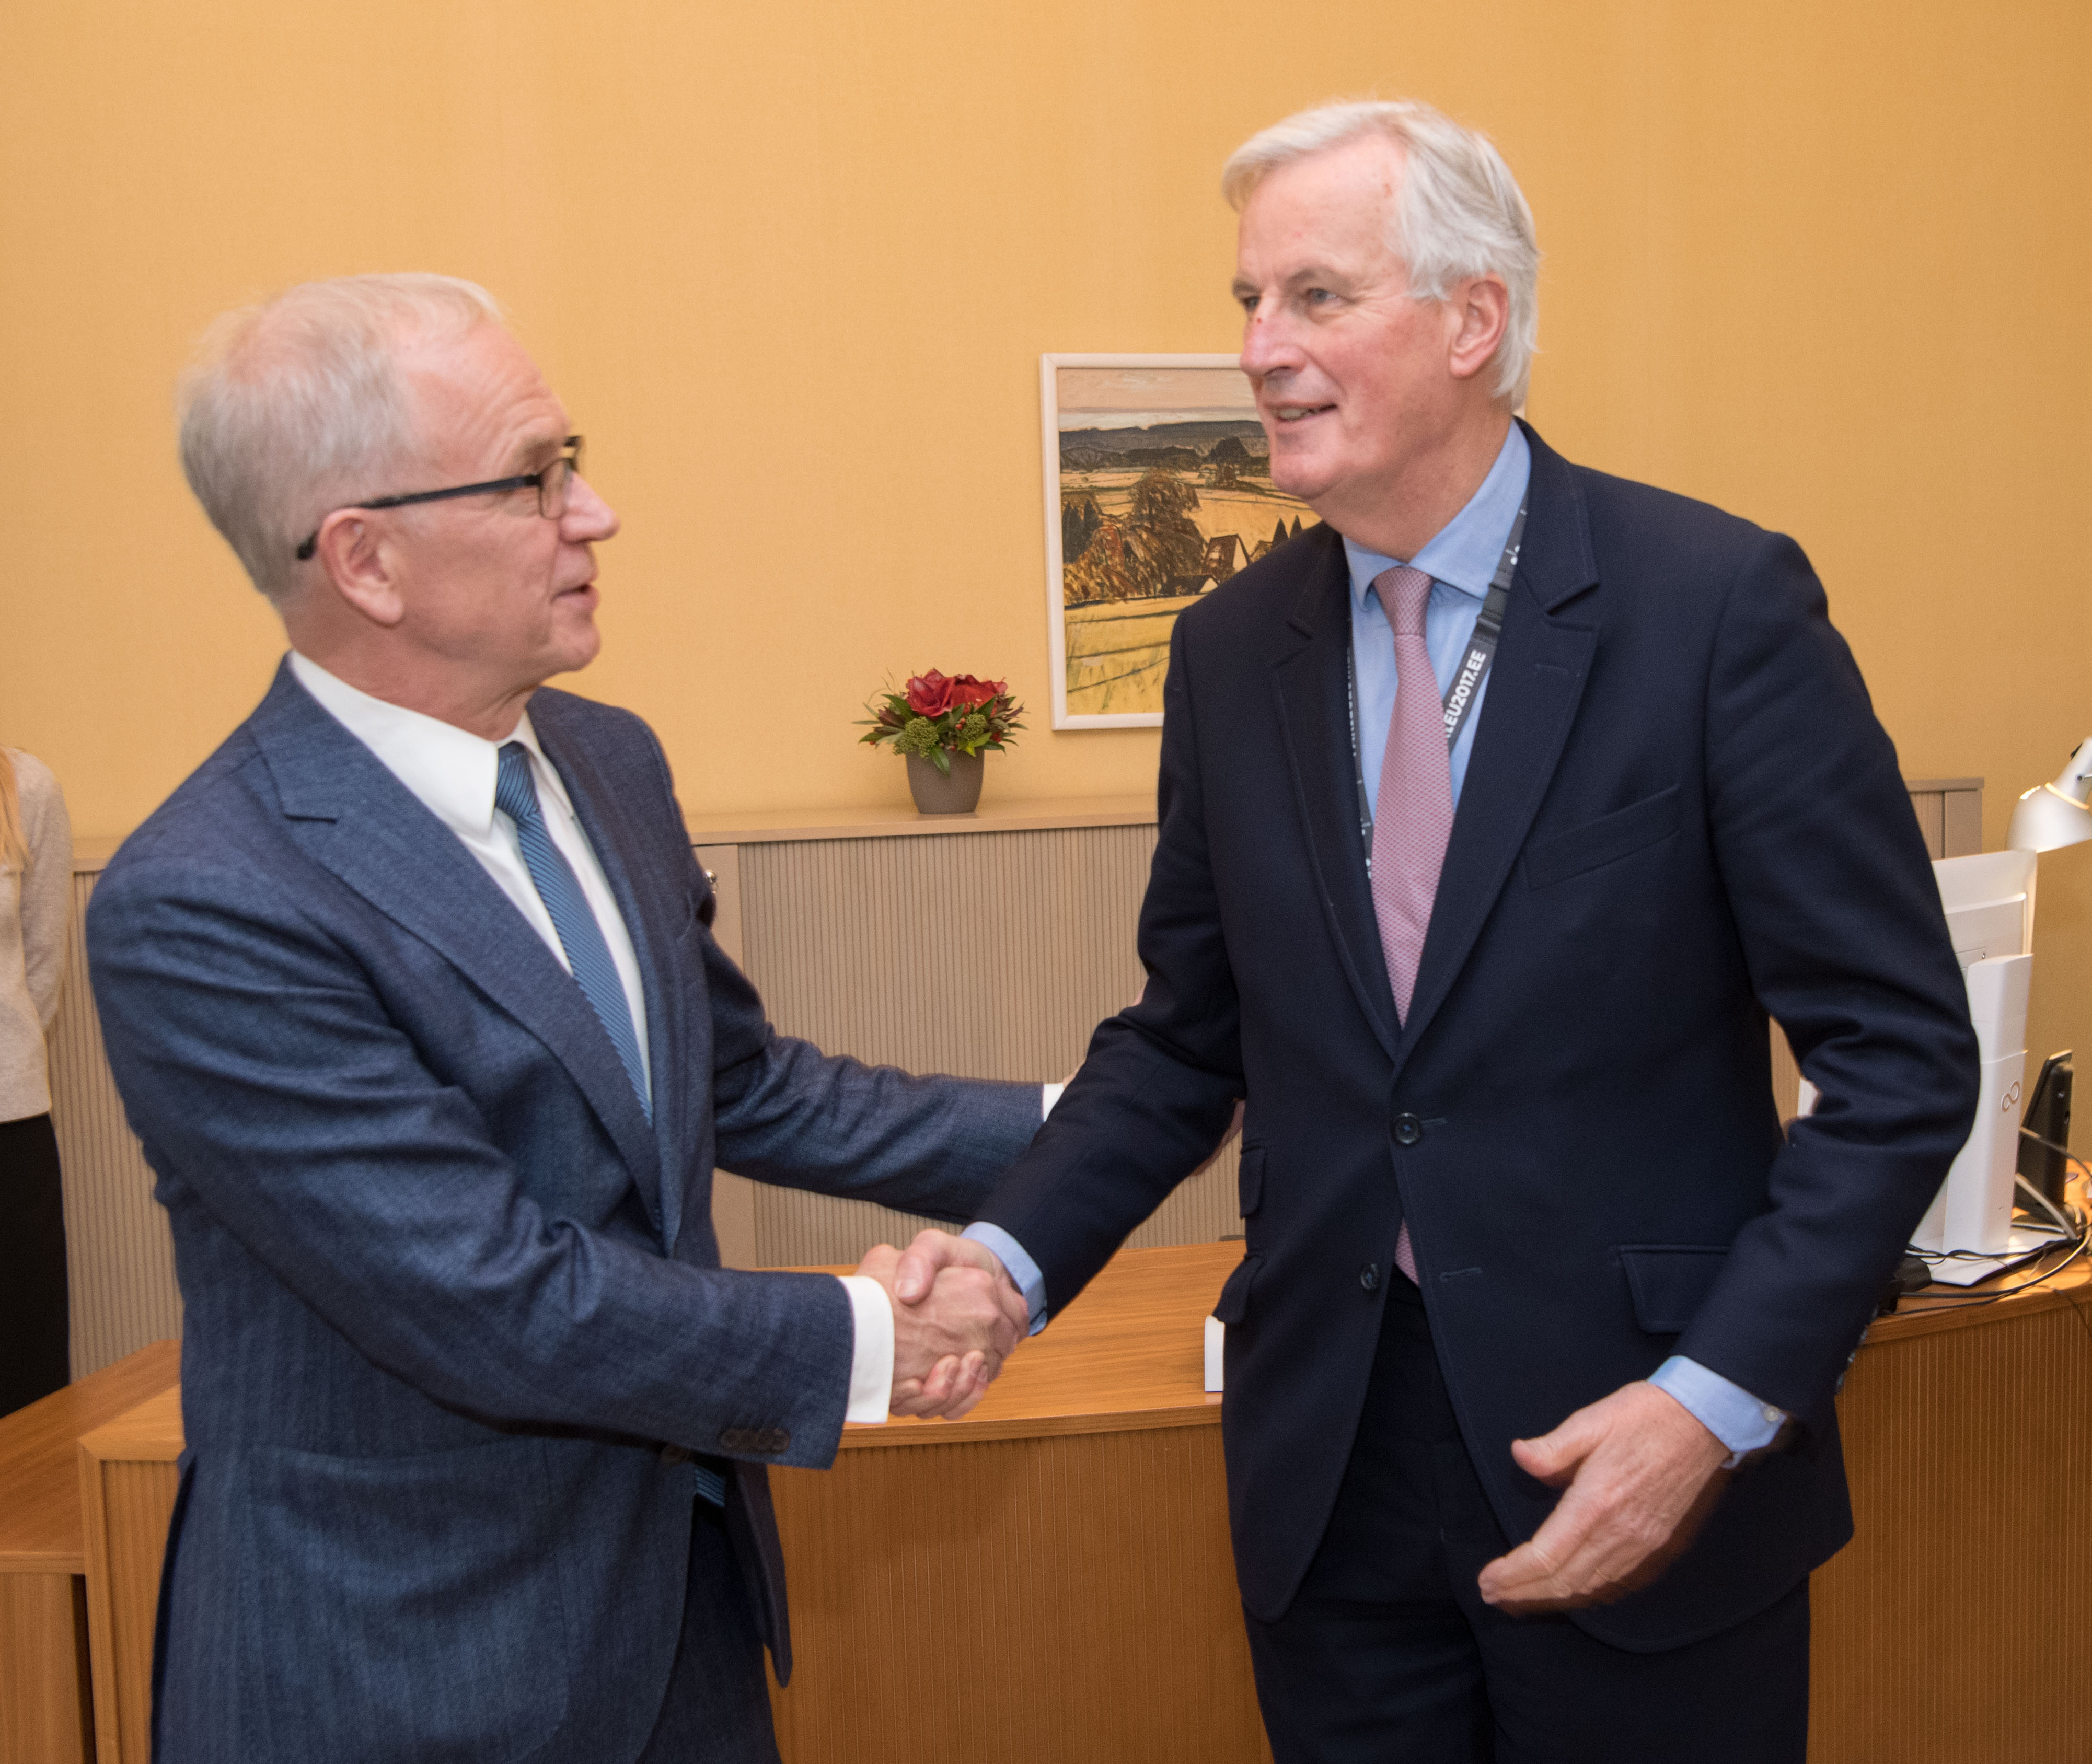 President of the Riigikogu (Parliament of Estonia) Eiki Nestor with European Chief Negotiator for the United Kingdom Exiting the European Union Michel Barnier